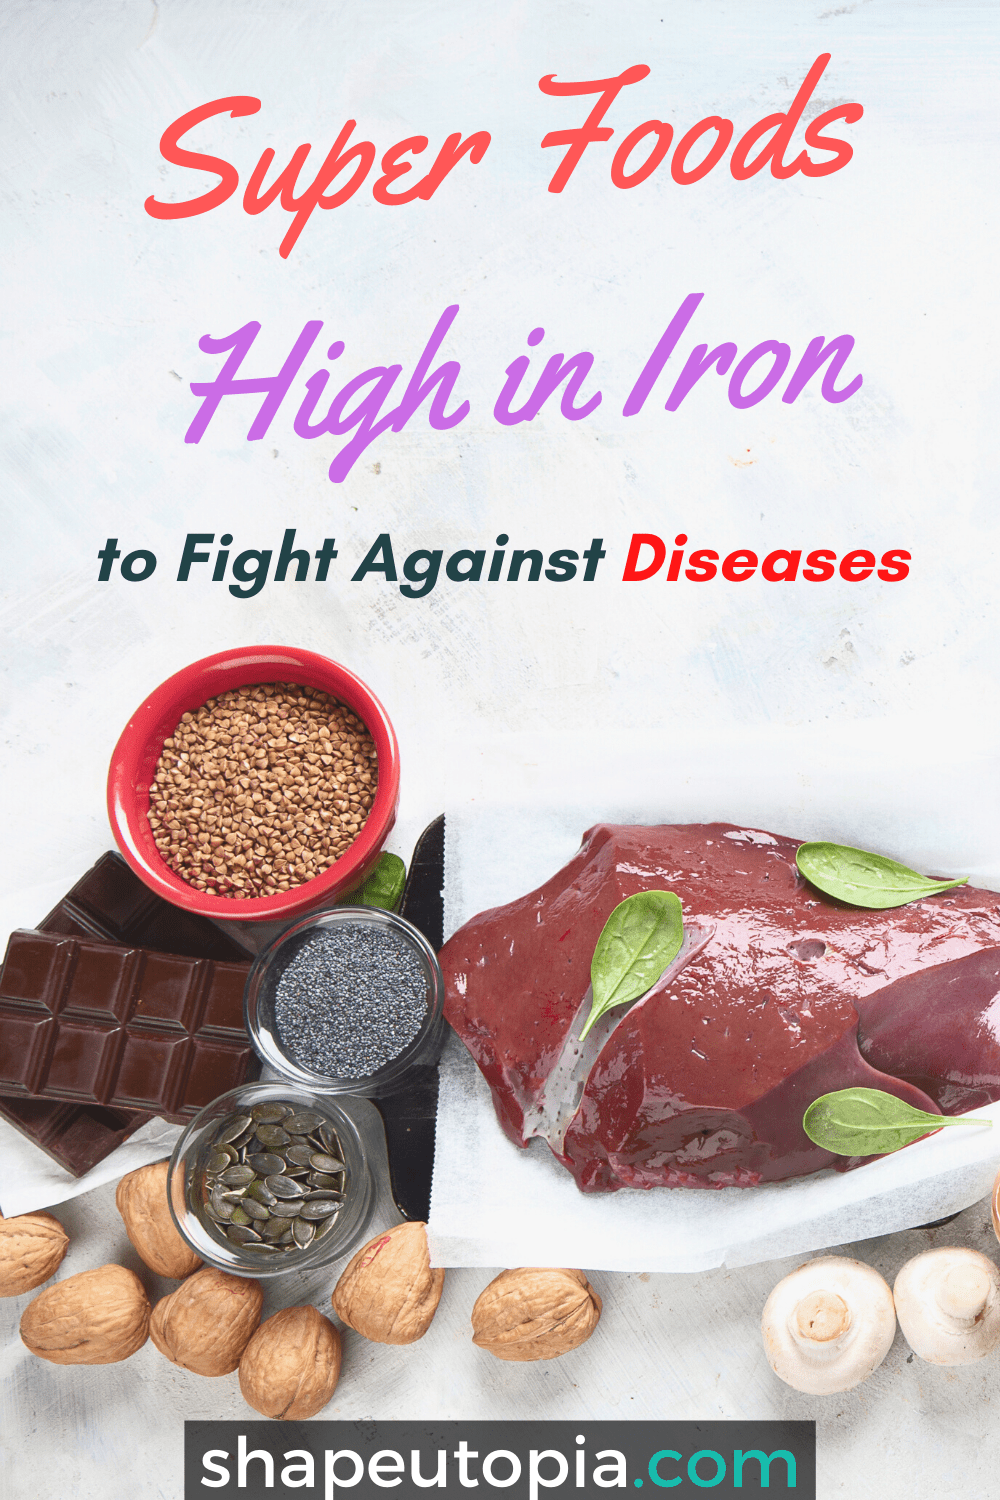 Super Foods High in Iron to Fight Against Diseases